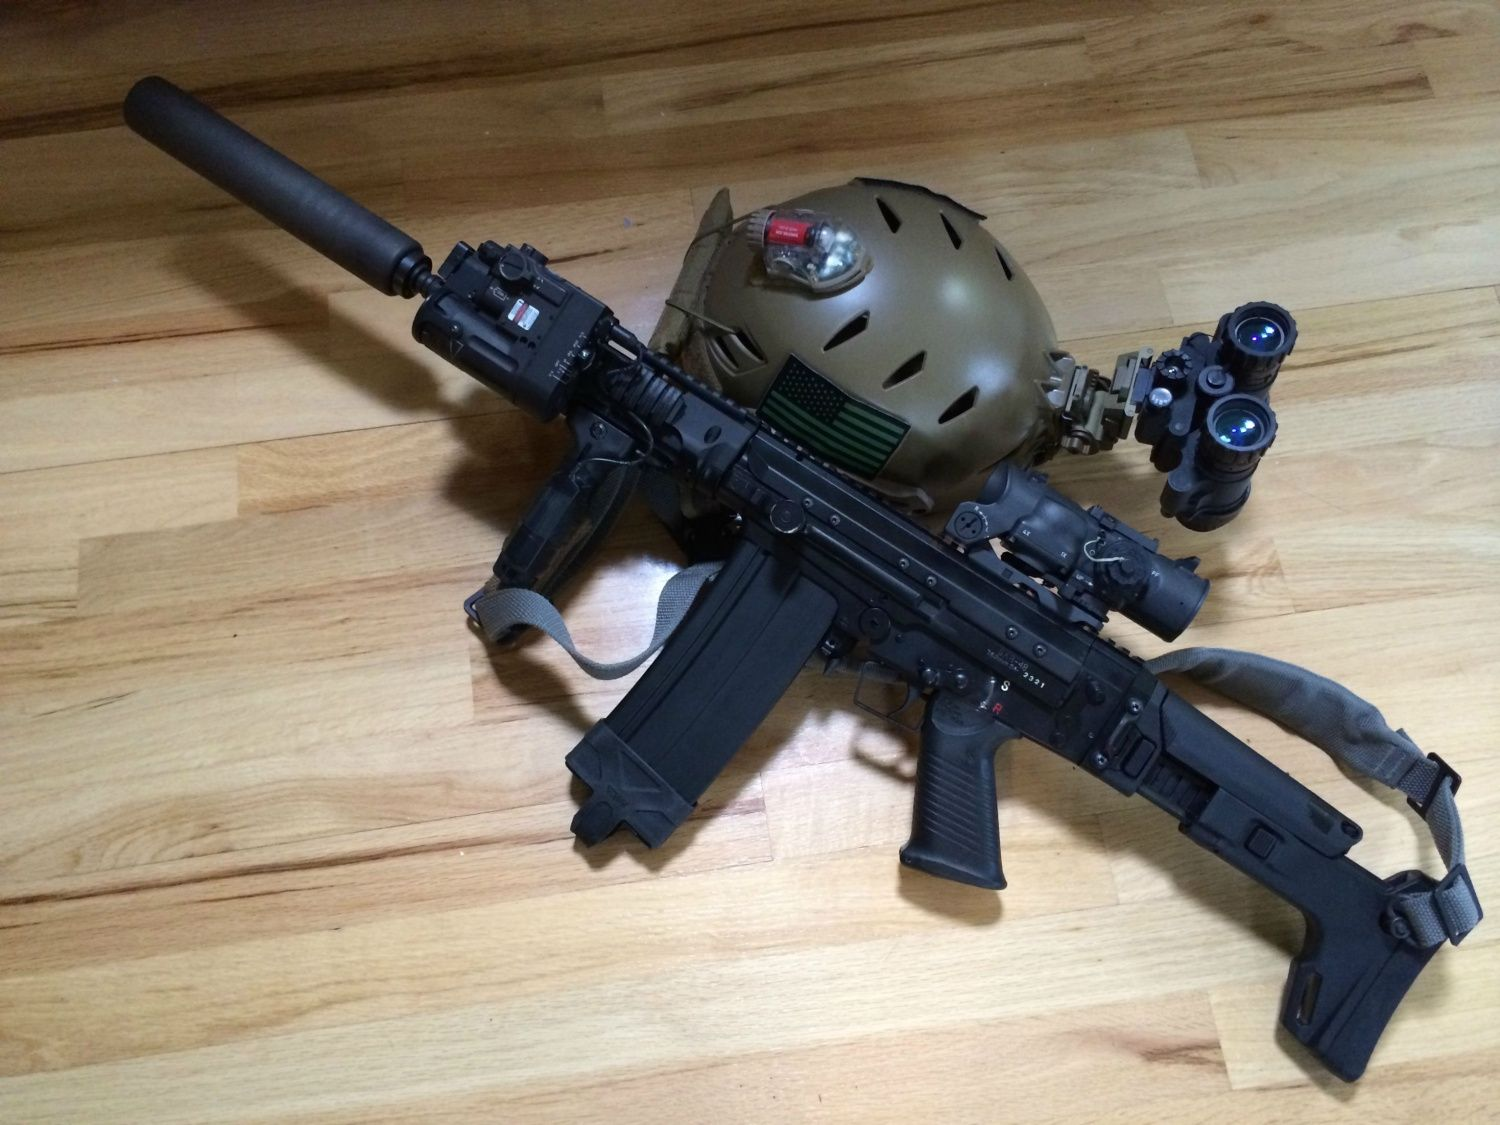 FULL AUTO SAR-48, Yankee Hill Flash hider, 7 62 phantom